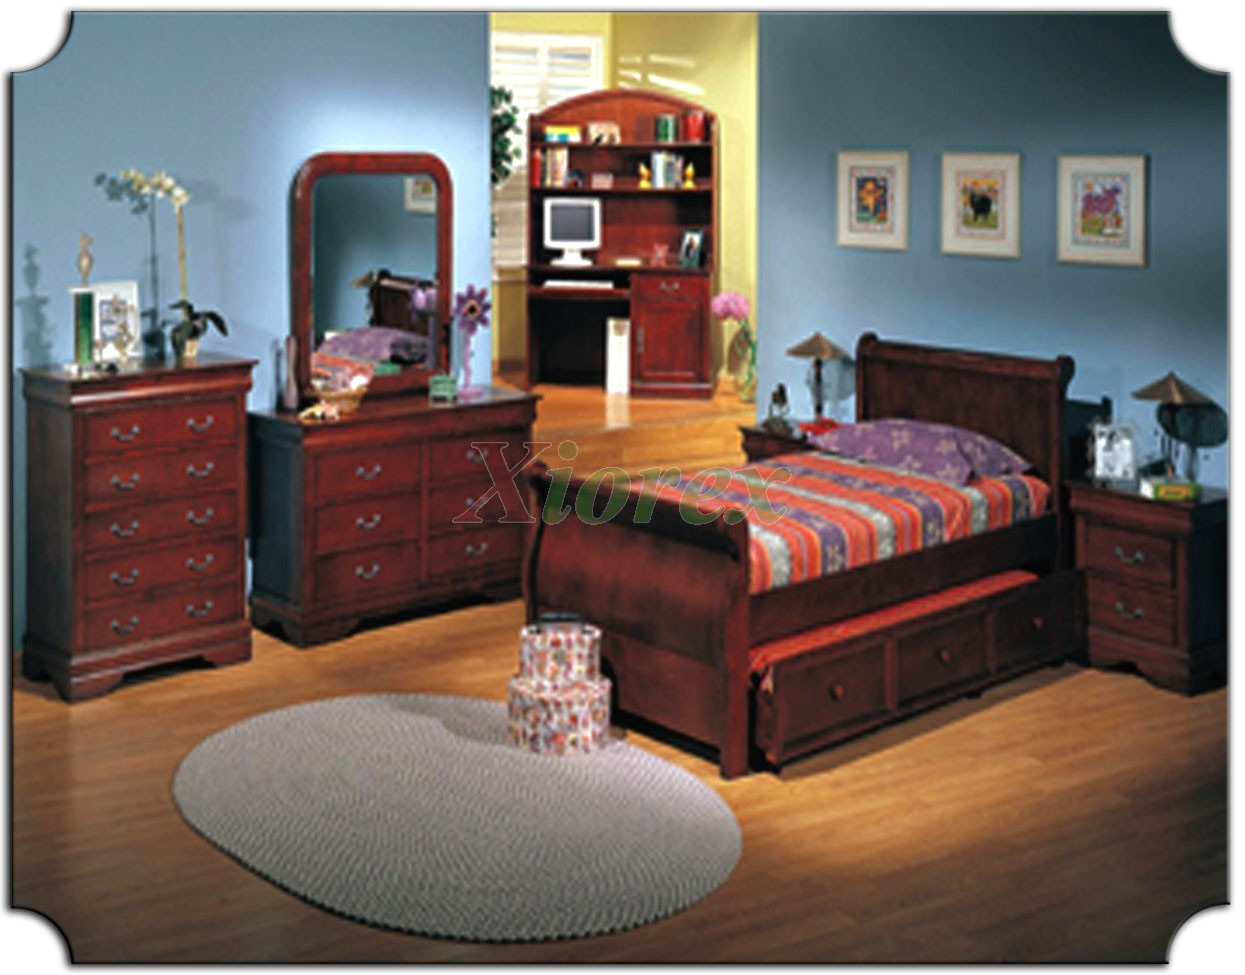 Kids Sleigh Bedroom Furniture Set With Trundle Bed 179